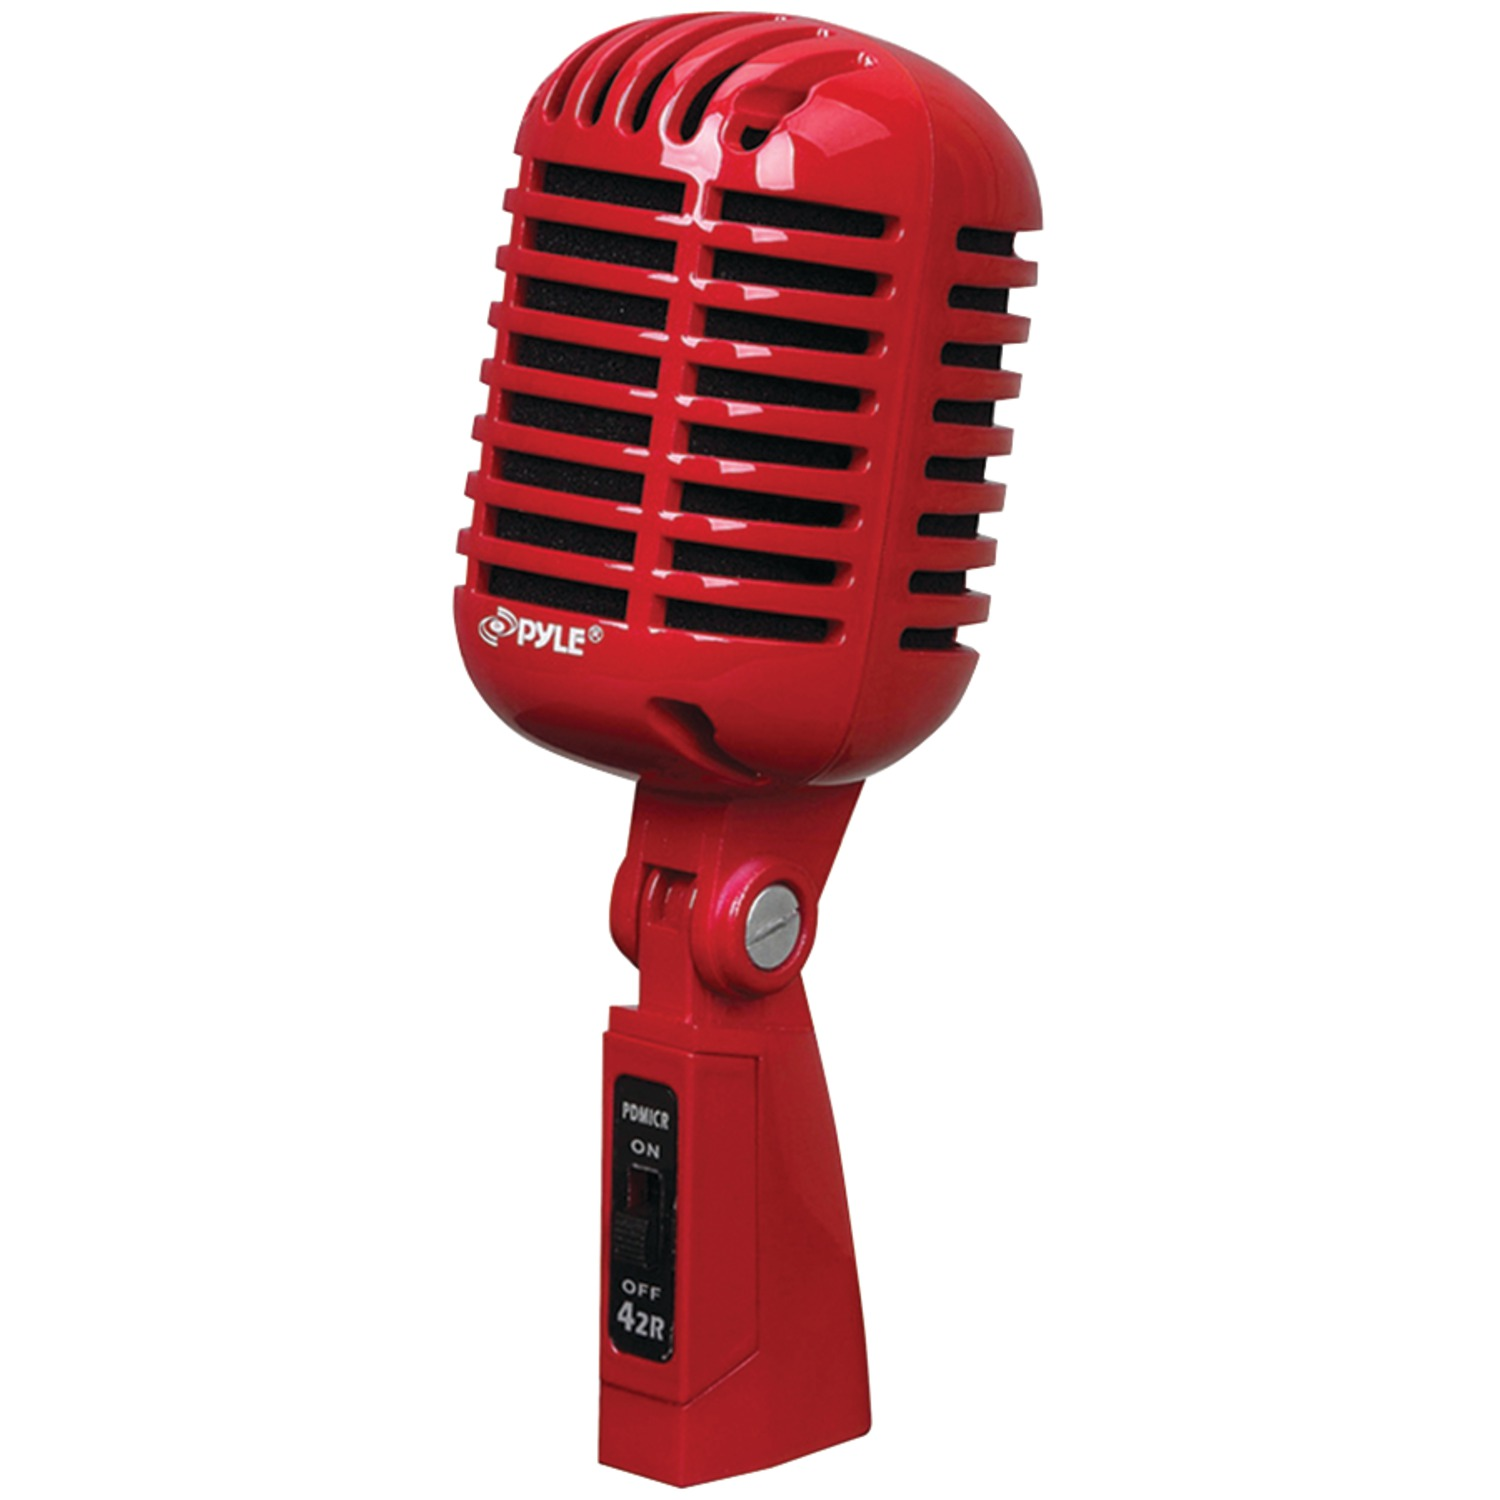 Pyle Pro PDMICR42R Classic Retro-Style Dynamic Vocal Microphone (Red) by Pyle Pro